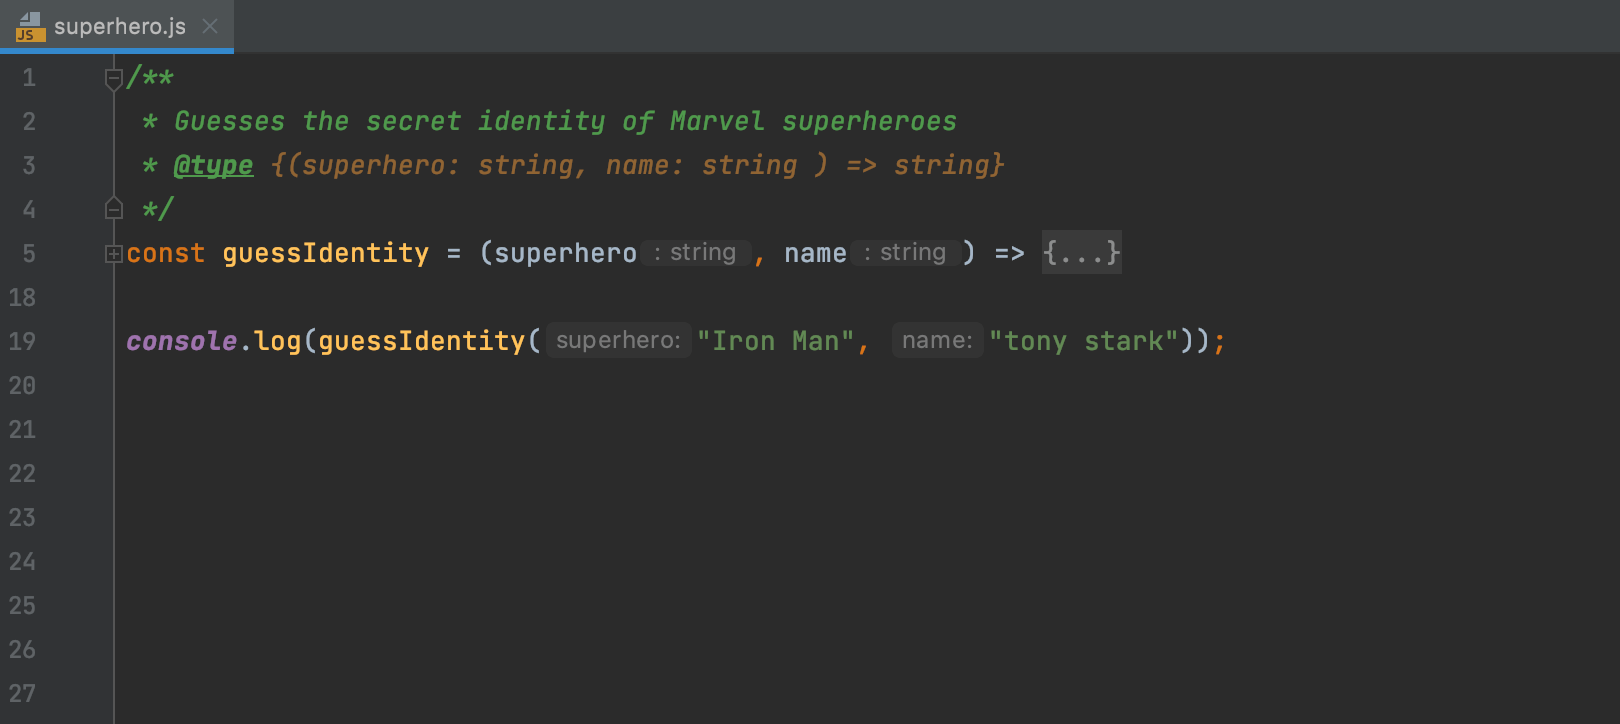 https://www.jetbrains.com/webstorm/whatsnew/img/2021.2/support-for-ts-types-in-jsdoc-810@2x.png